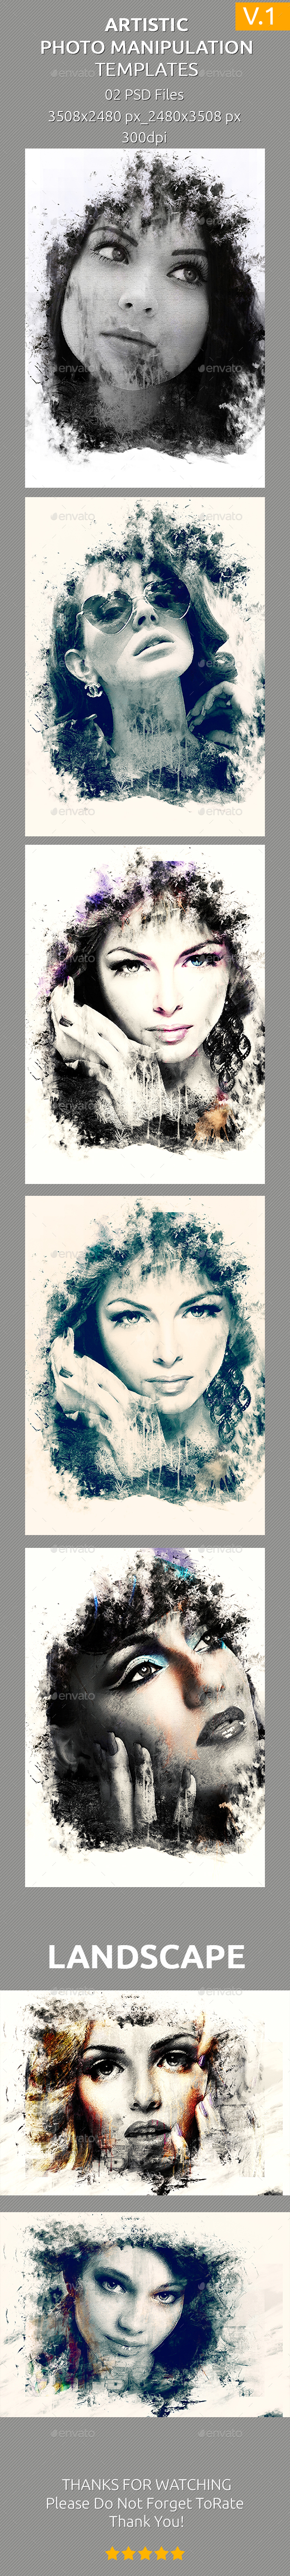 Artistic Photo Manipulation Templates (Artistic)